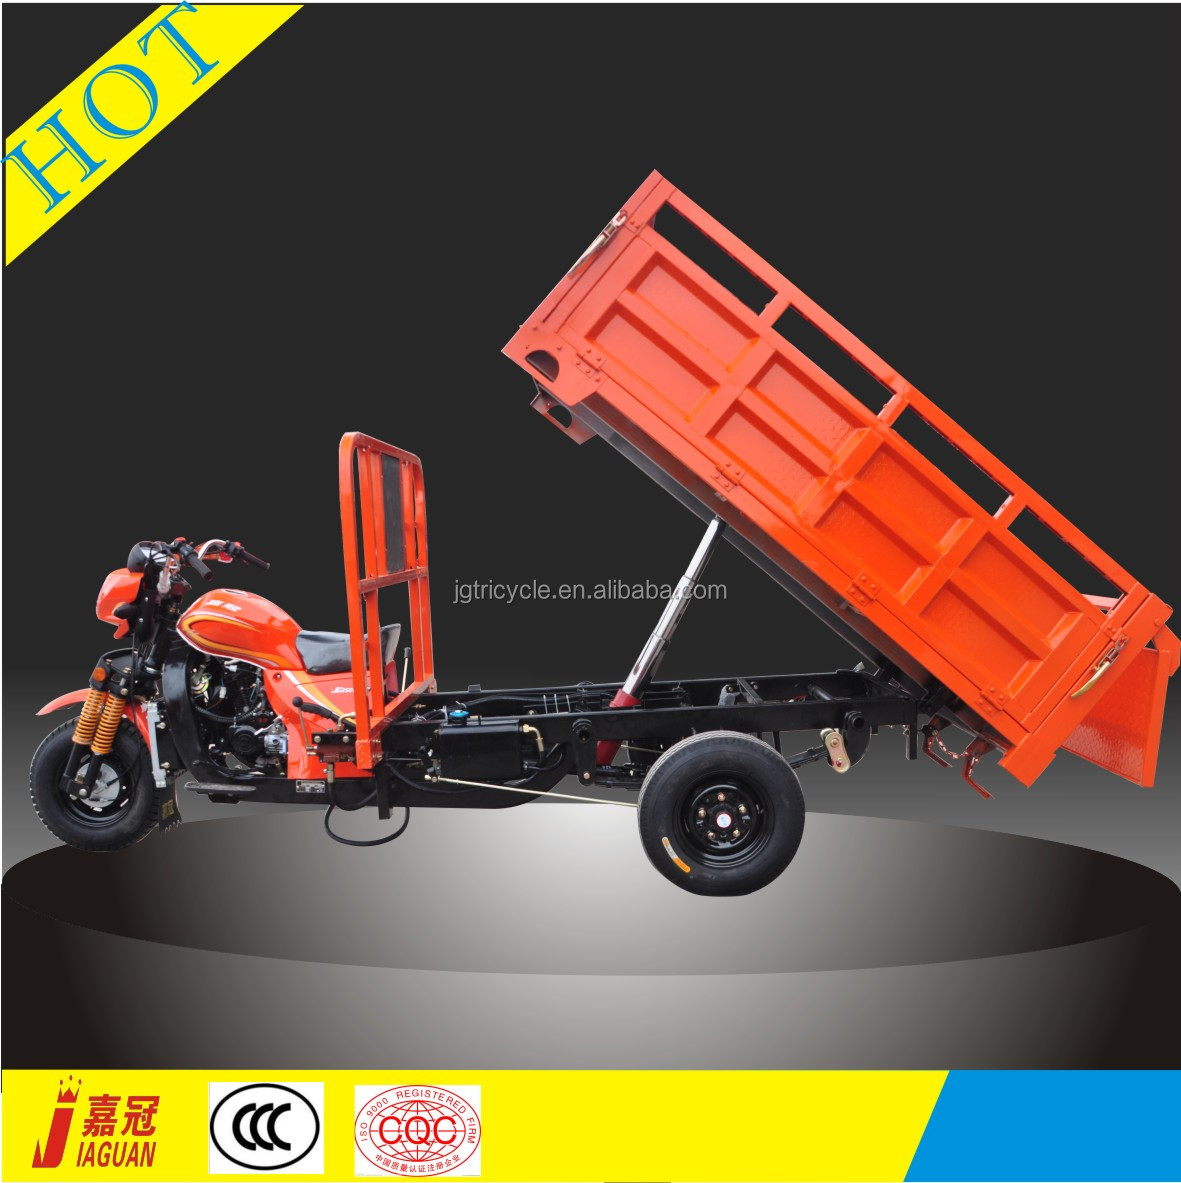 Hydraulic 250cc dumper three wheel motorcycles on sale